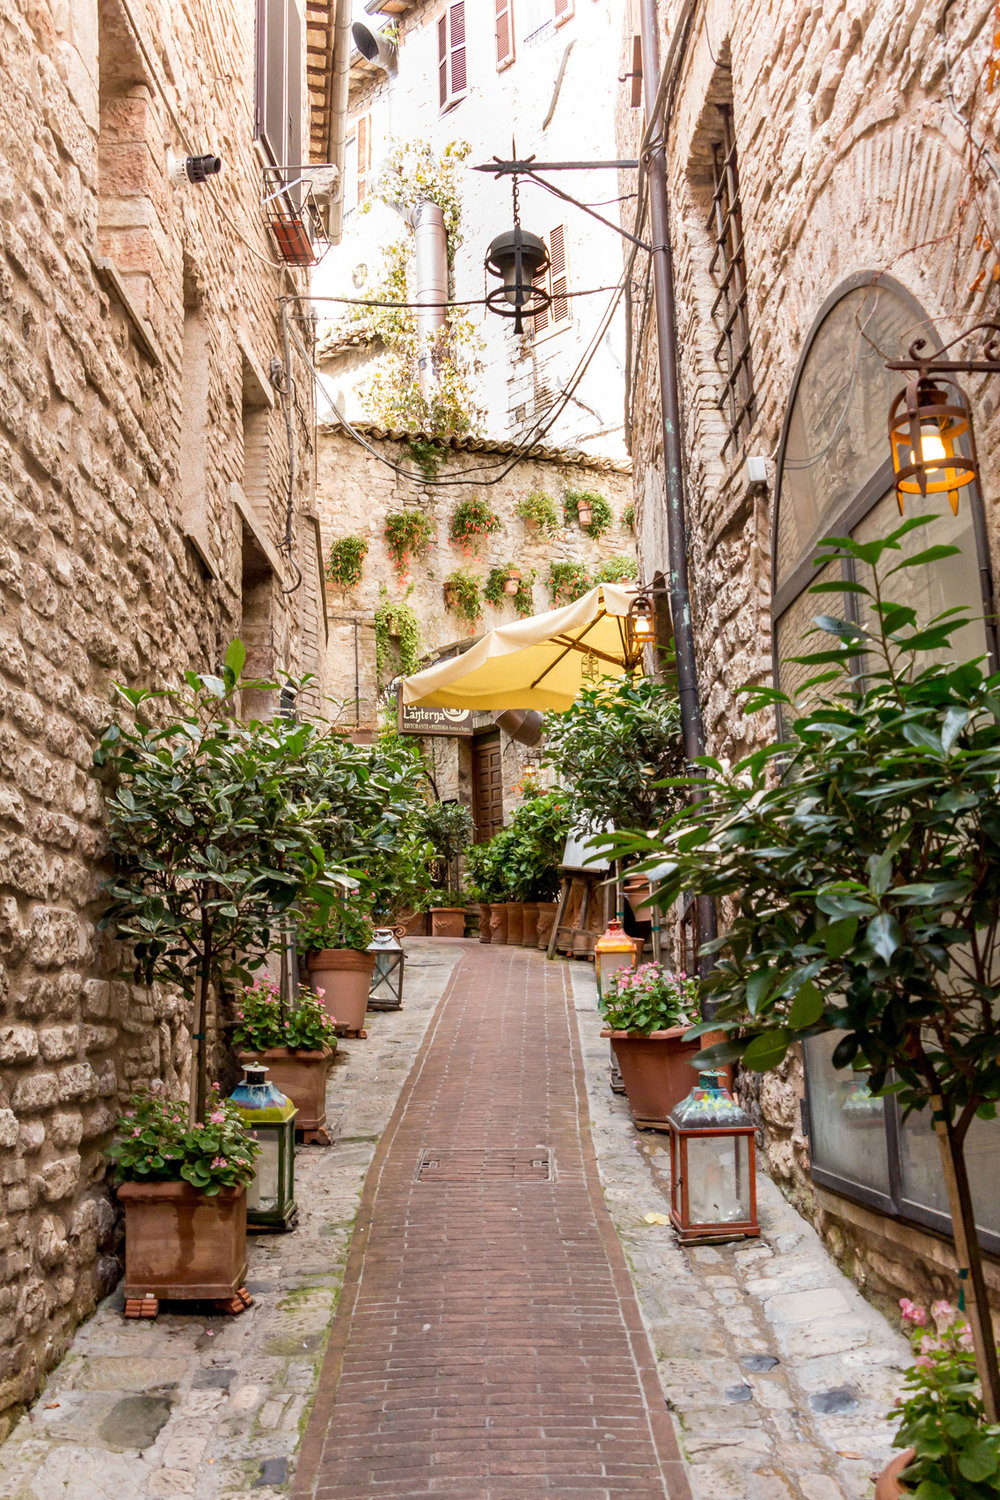 Flowery street in Assisi, Umbria